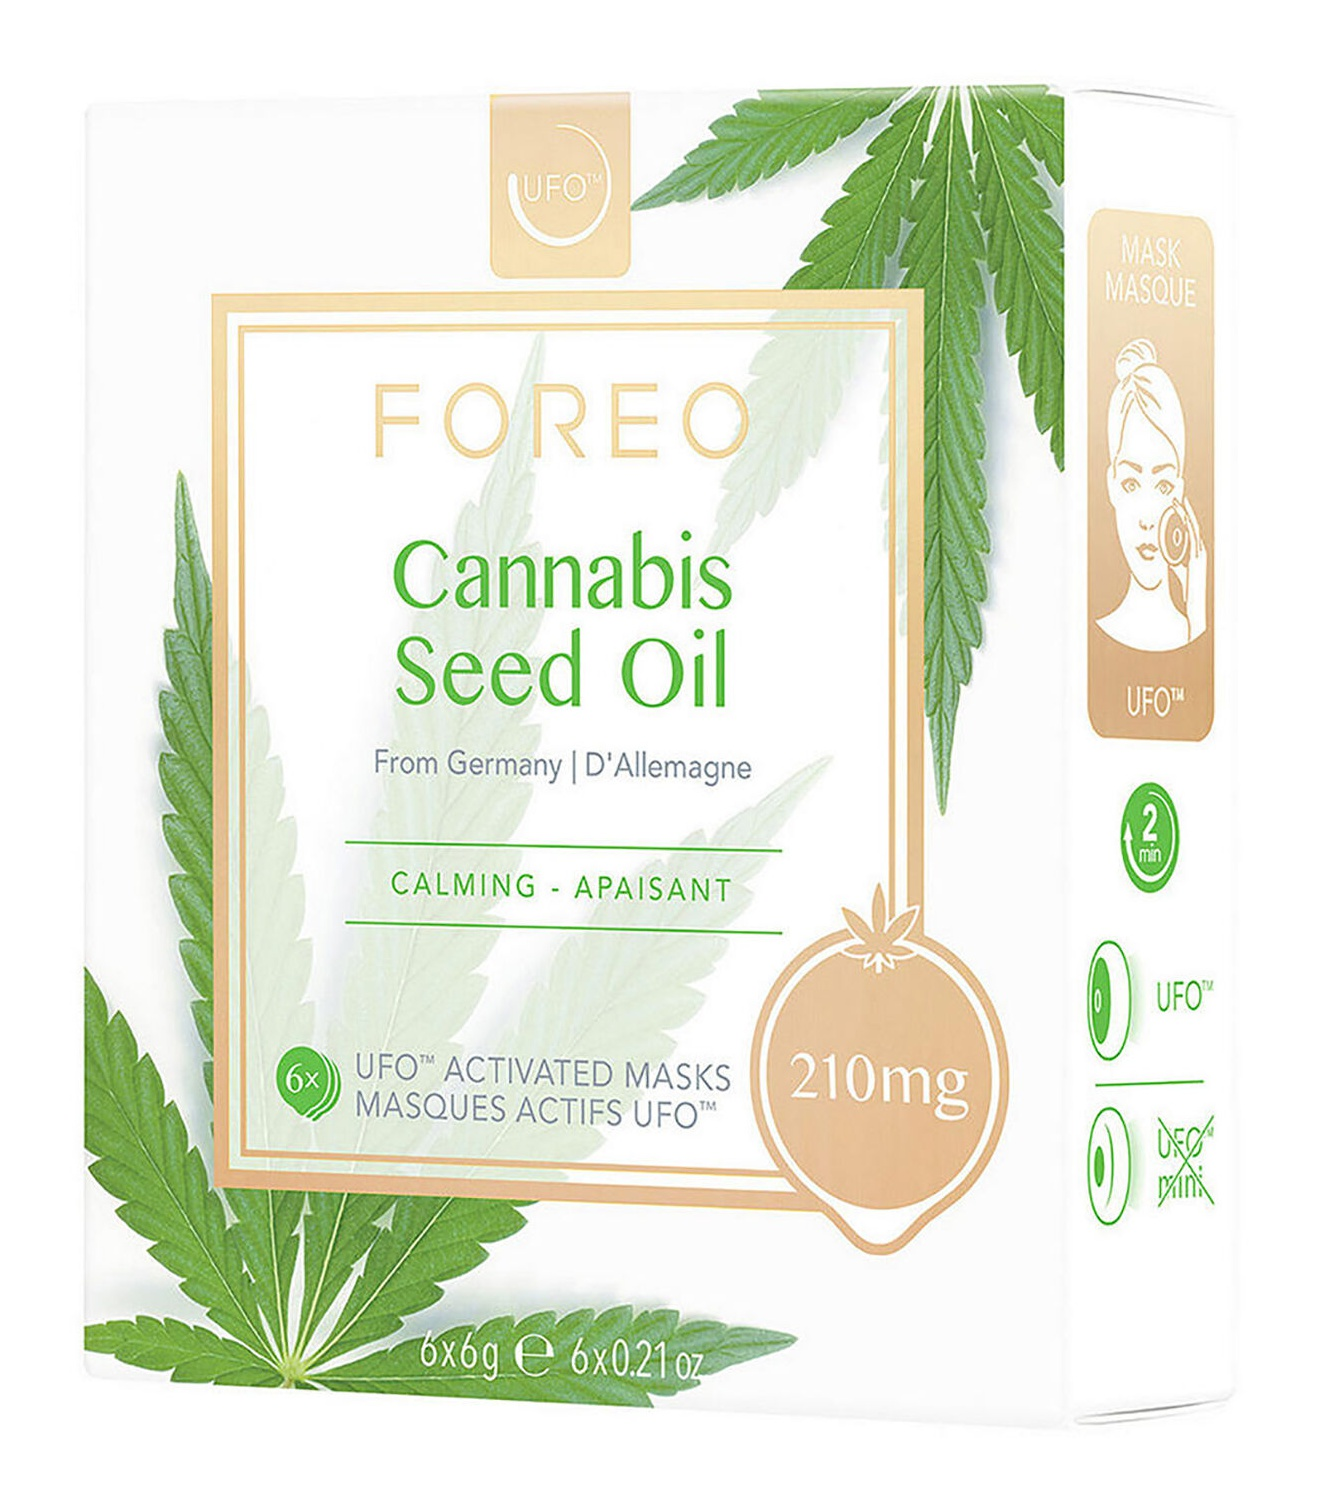 FOREO Ufo Mask Cannabis Seed Oil